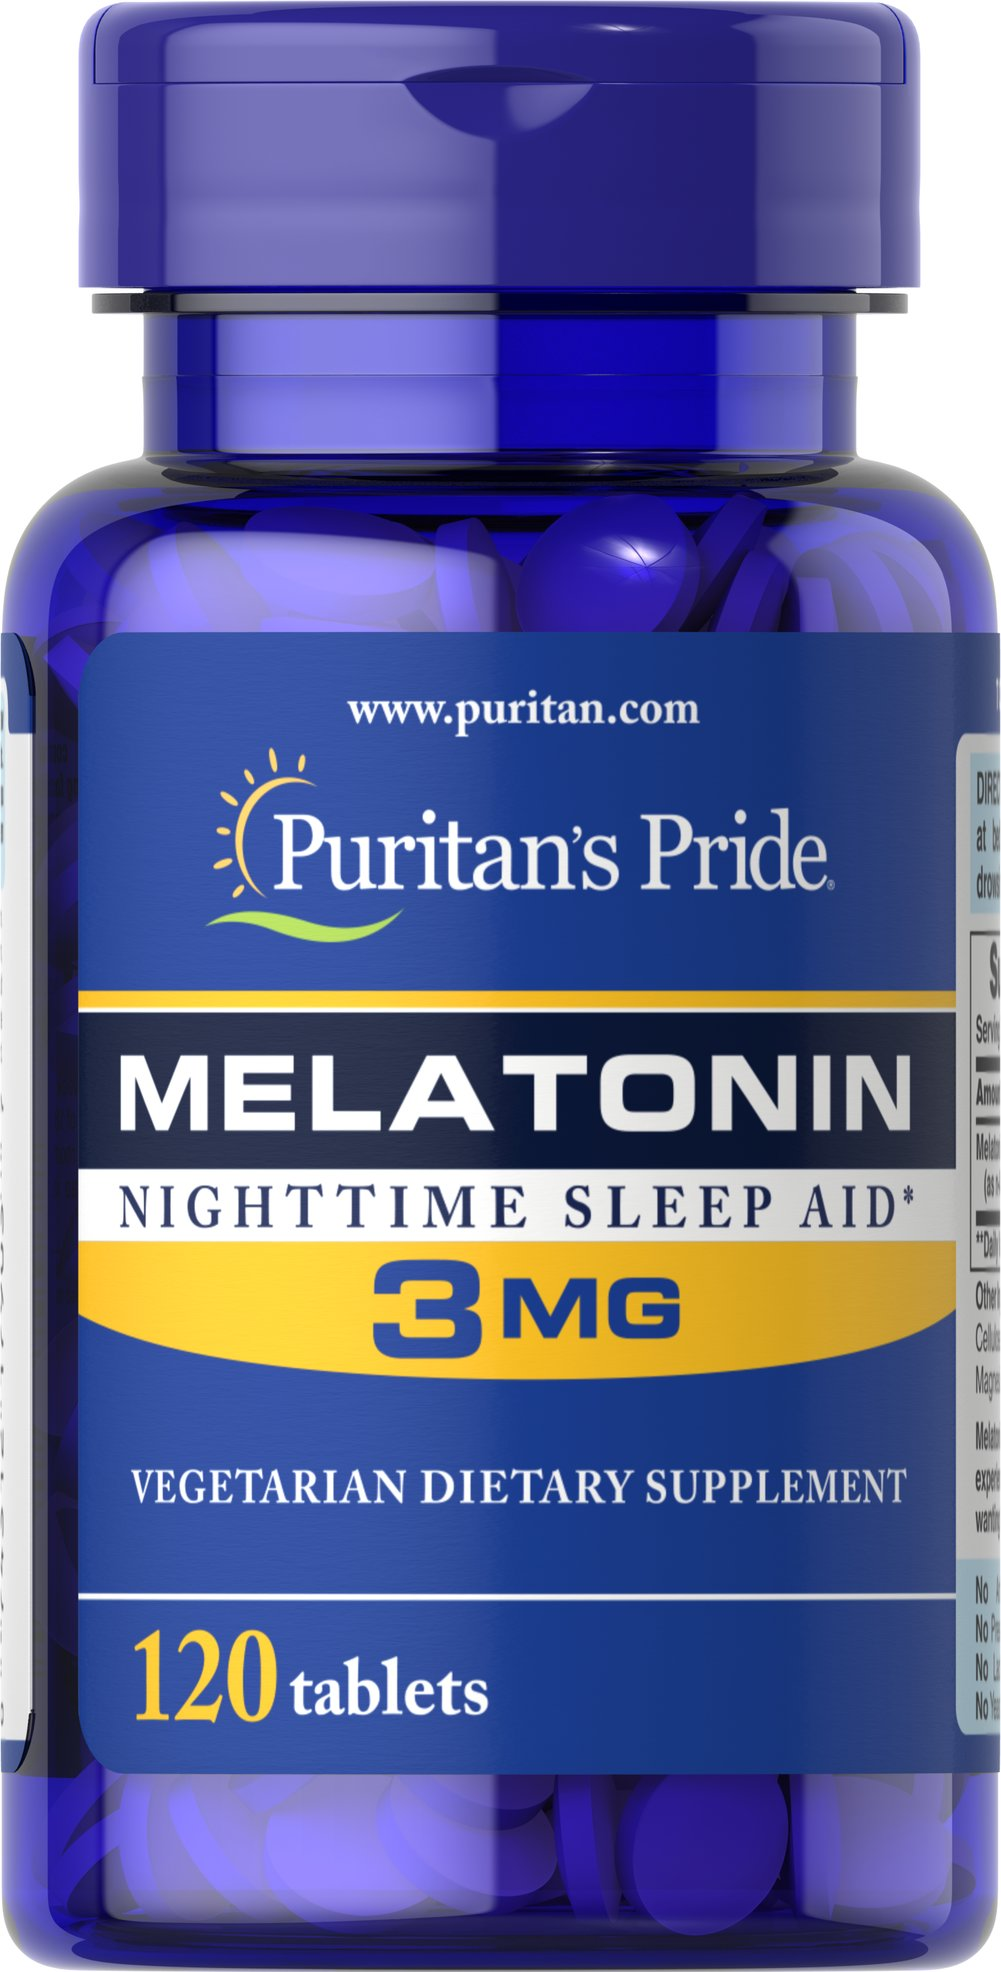 Melatonin 3 mg <p>Sometimes it's hard to unwind after a long day. That's when it's time for Melatonin, a hormone naturally produced in the body that is closely involved in the natural sleep cycle.** It's a terrific choice if you experience occasional sleeplessness or jet lag, or if you want to improve your quality of rest.**  Melatonin helps you fall asleep quickly and stay asleep longer**<br /></p> 120 Tablets 3 mg $7.29